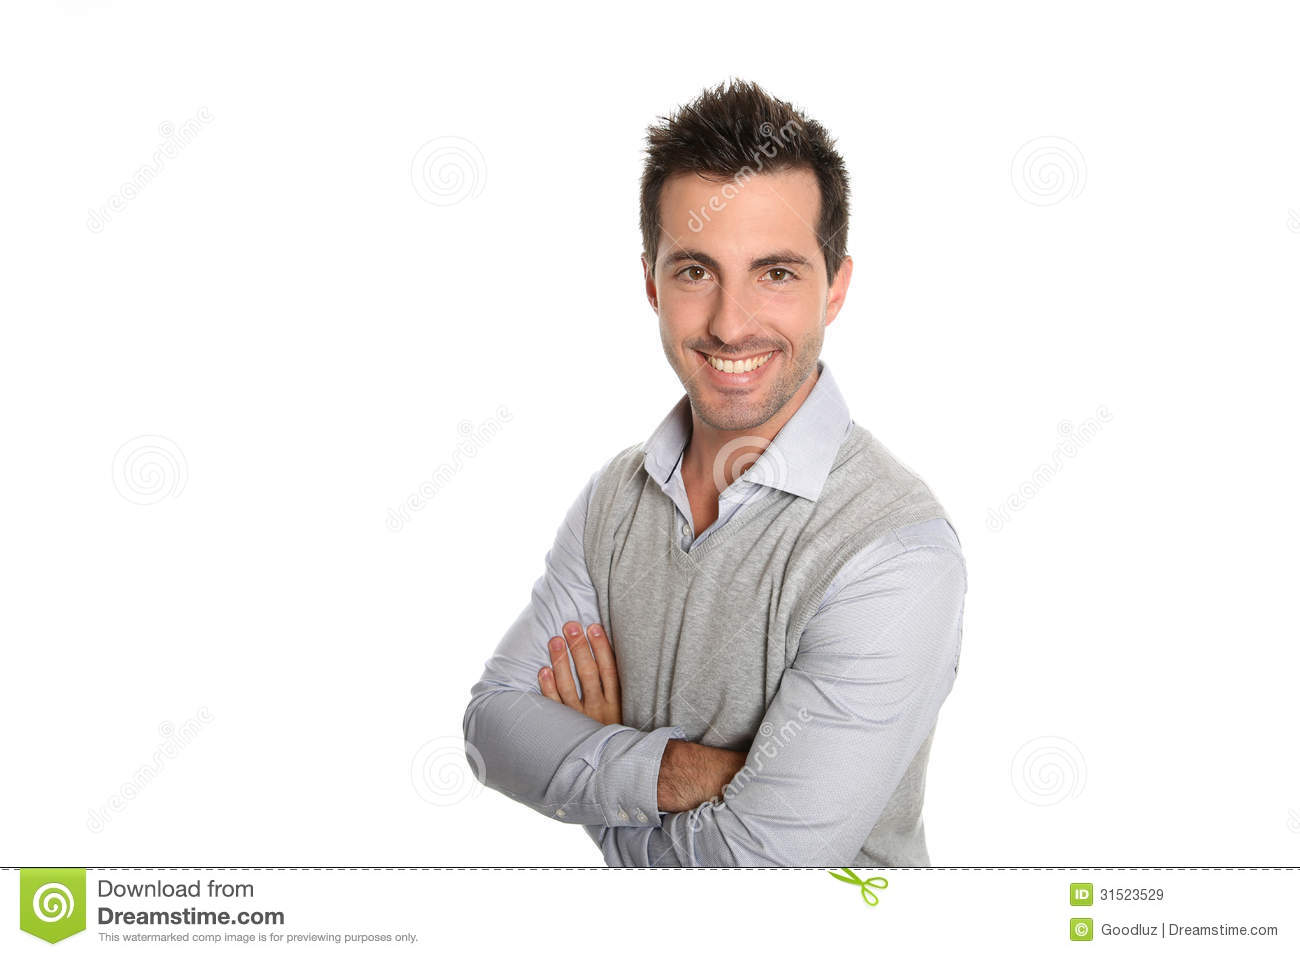 happy-man-standing-wit-arms-crossed-cheerful-isolated-31523529.jpg